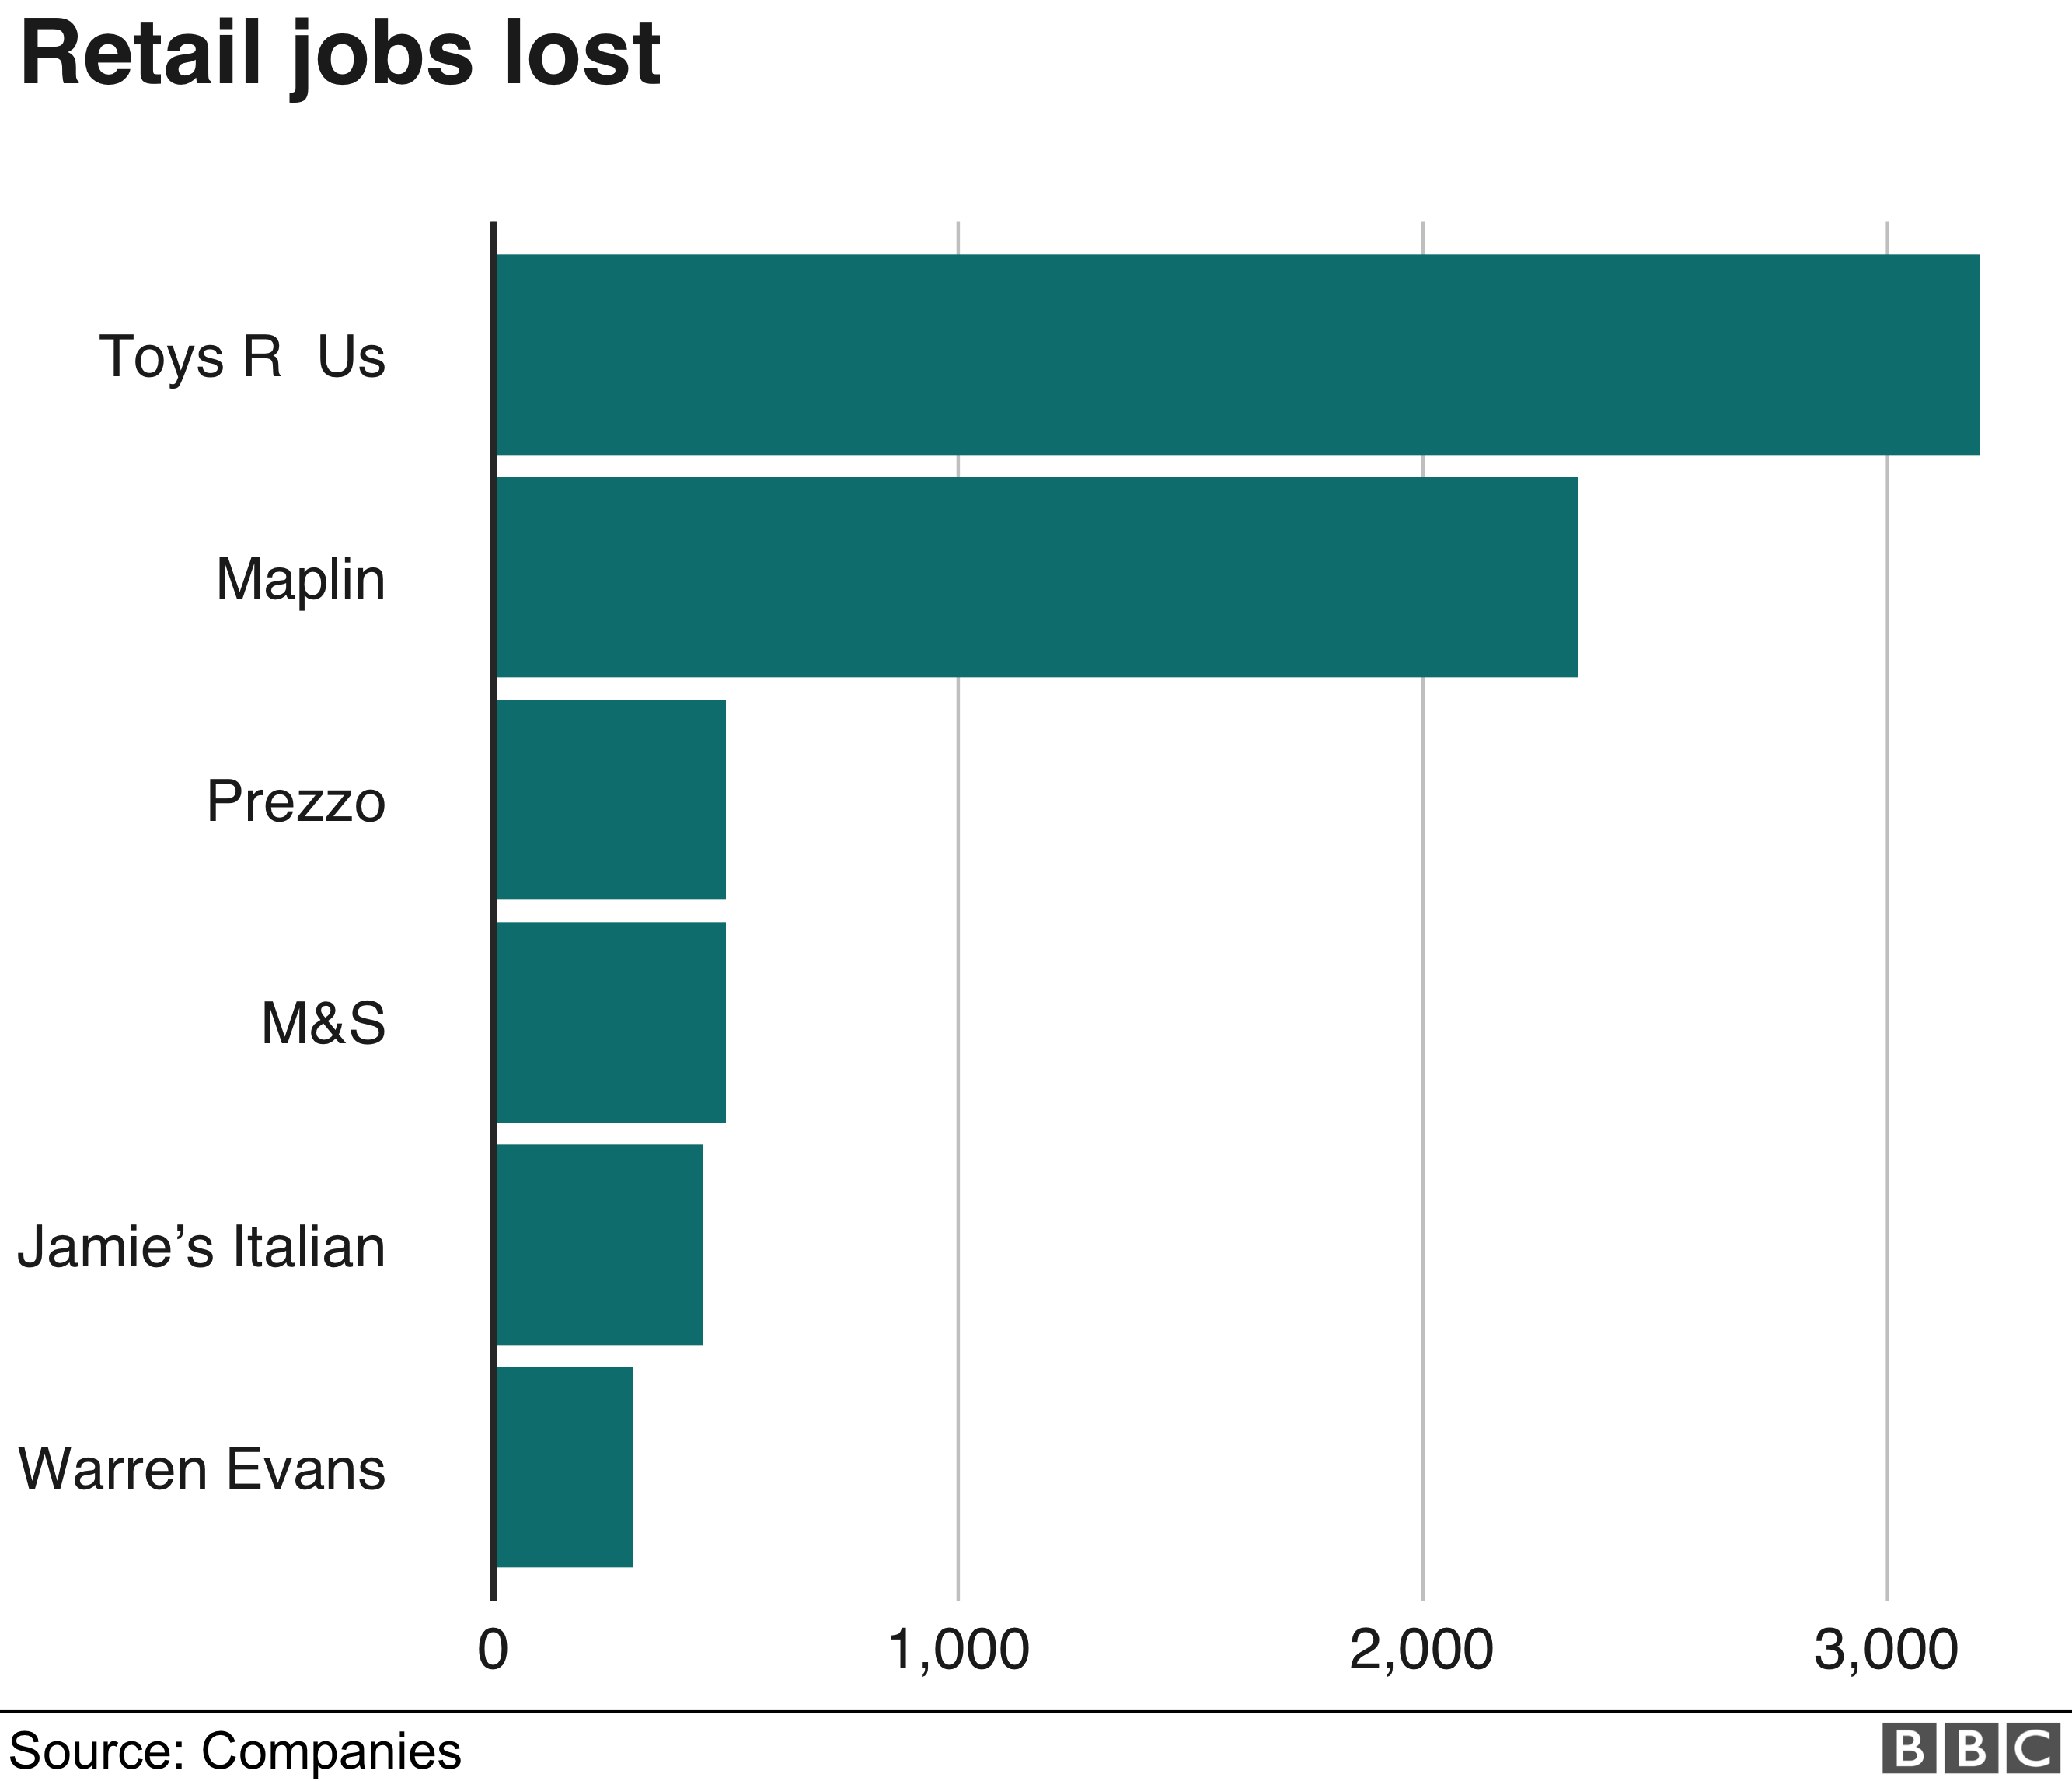 Retail jobs lost